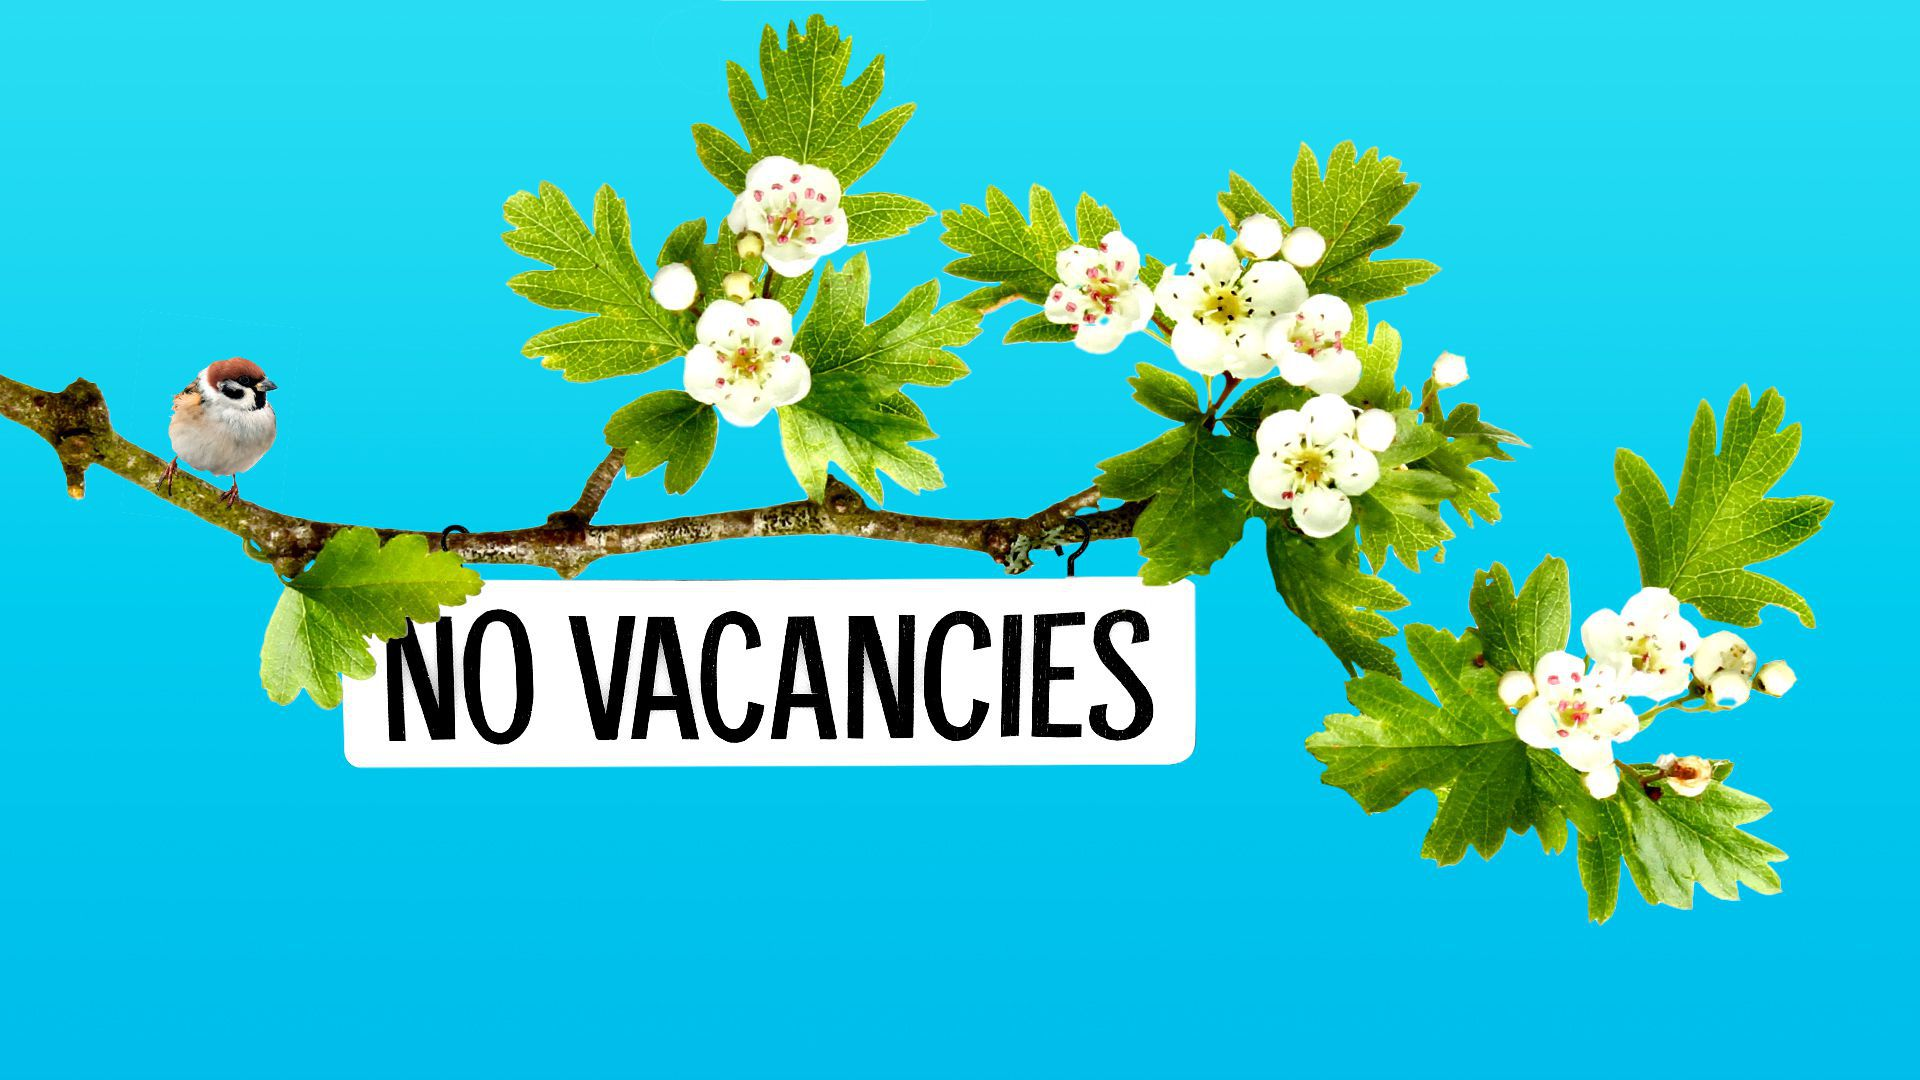 Illustration of a tree branch with a no vacancies sign hanging off of it.